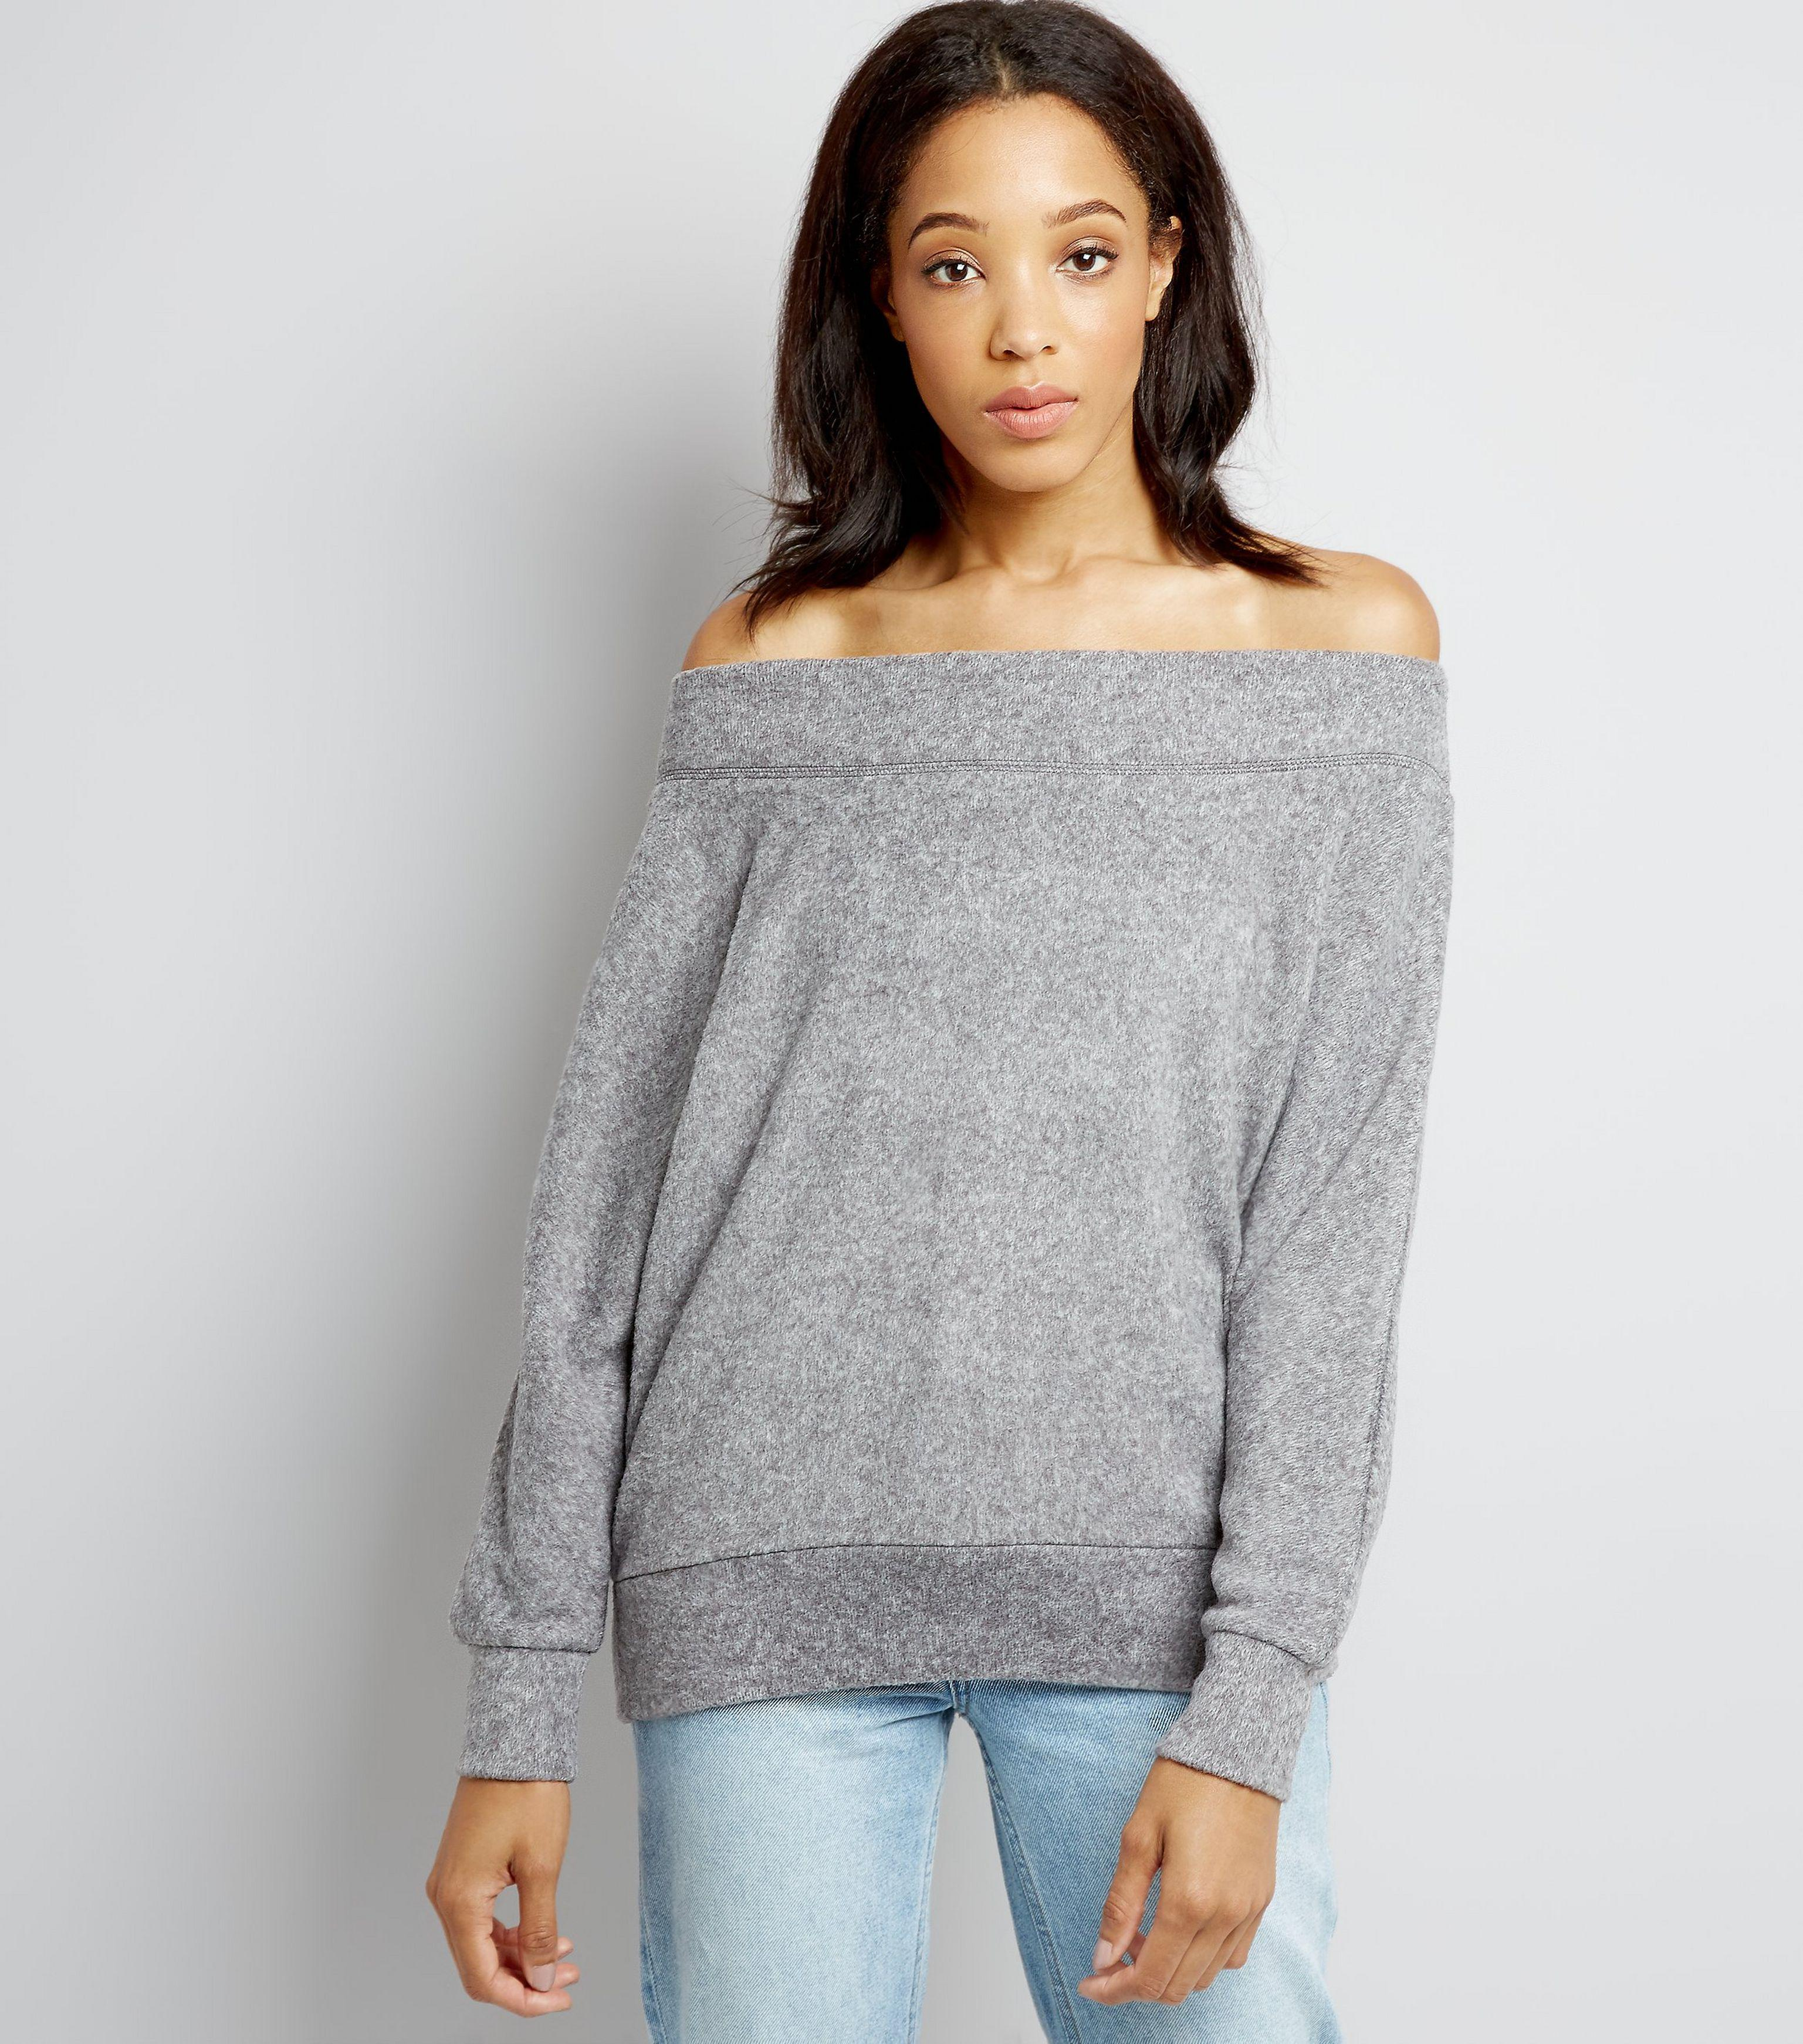 great discount for aesthetic appearance promotion New Look Denim Grey Bardot Neck Jumper in Gray - Lyst